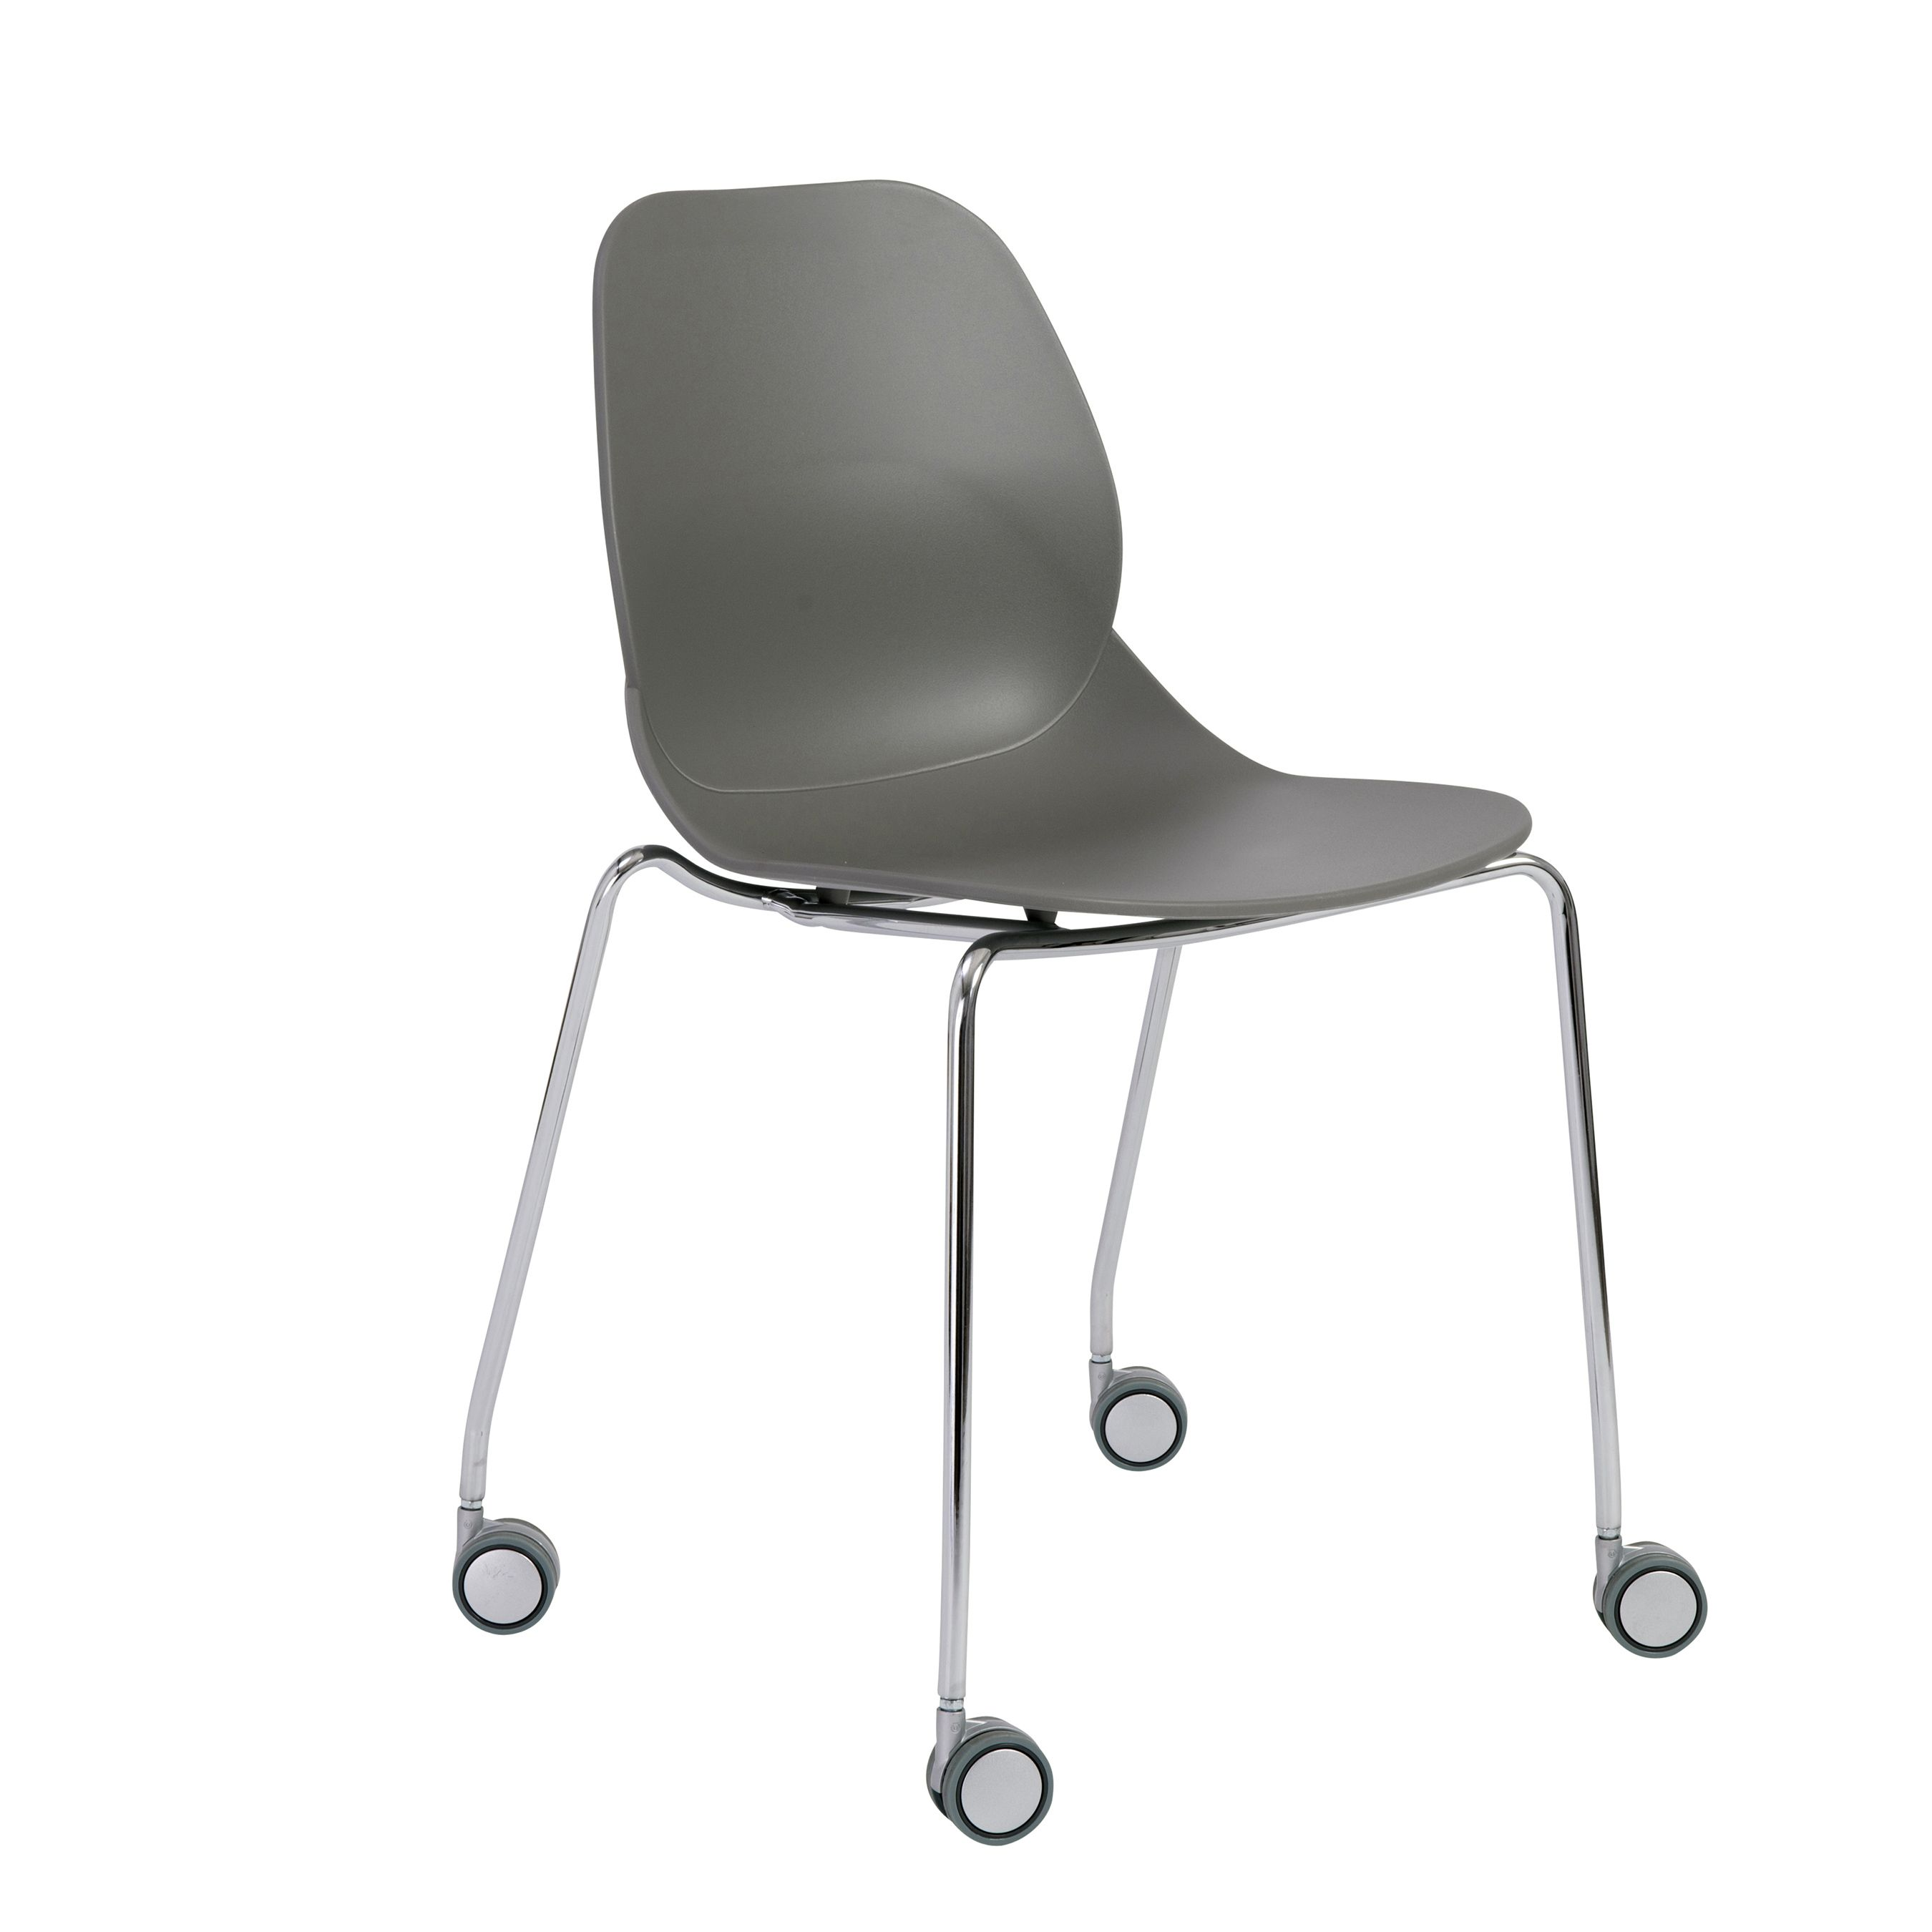 Euro Style / Chrome Teven Visitor Chair